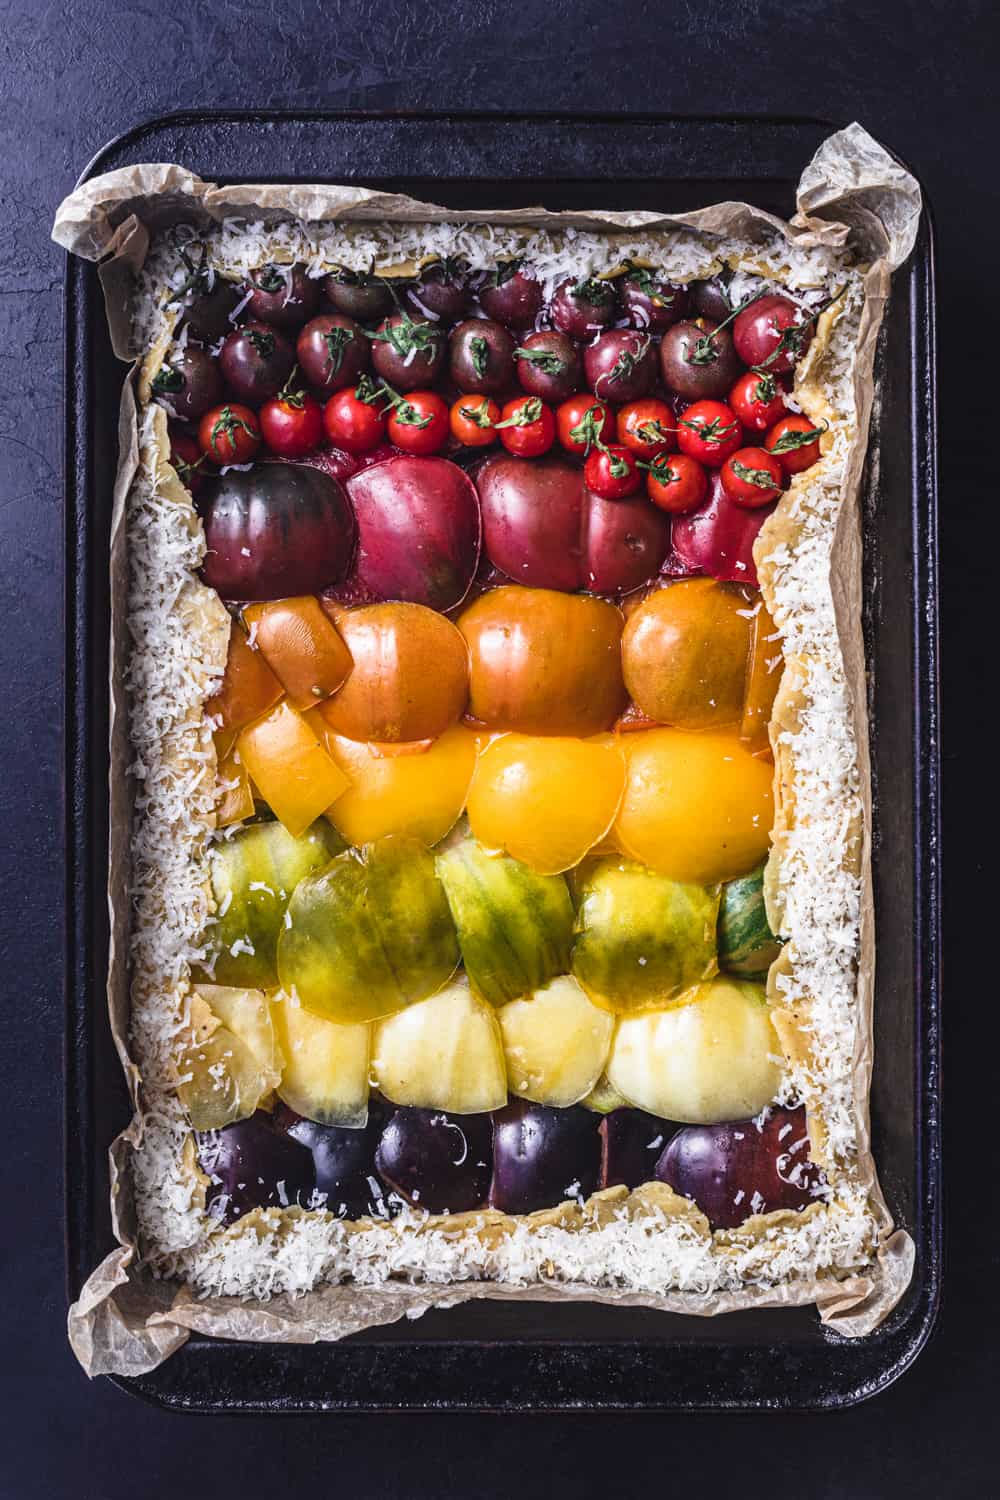 A rainbow heirloom tomato tart, overhead and pre-oven shot. The tomatoes are arranged on the dough like a rainbow, from red to purple.